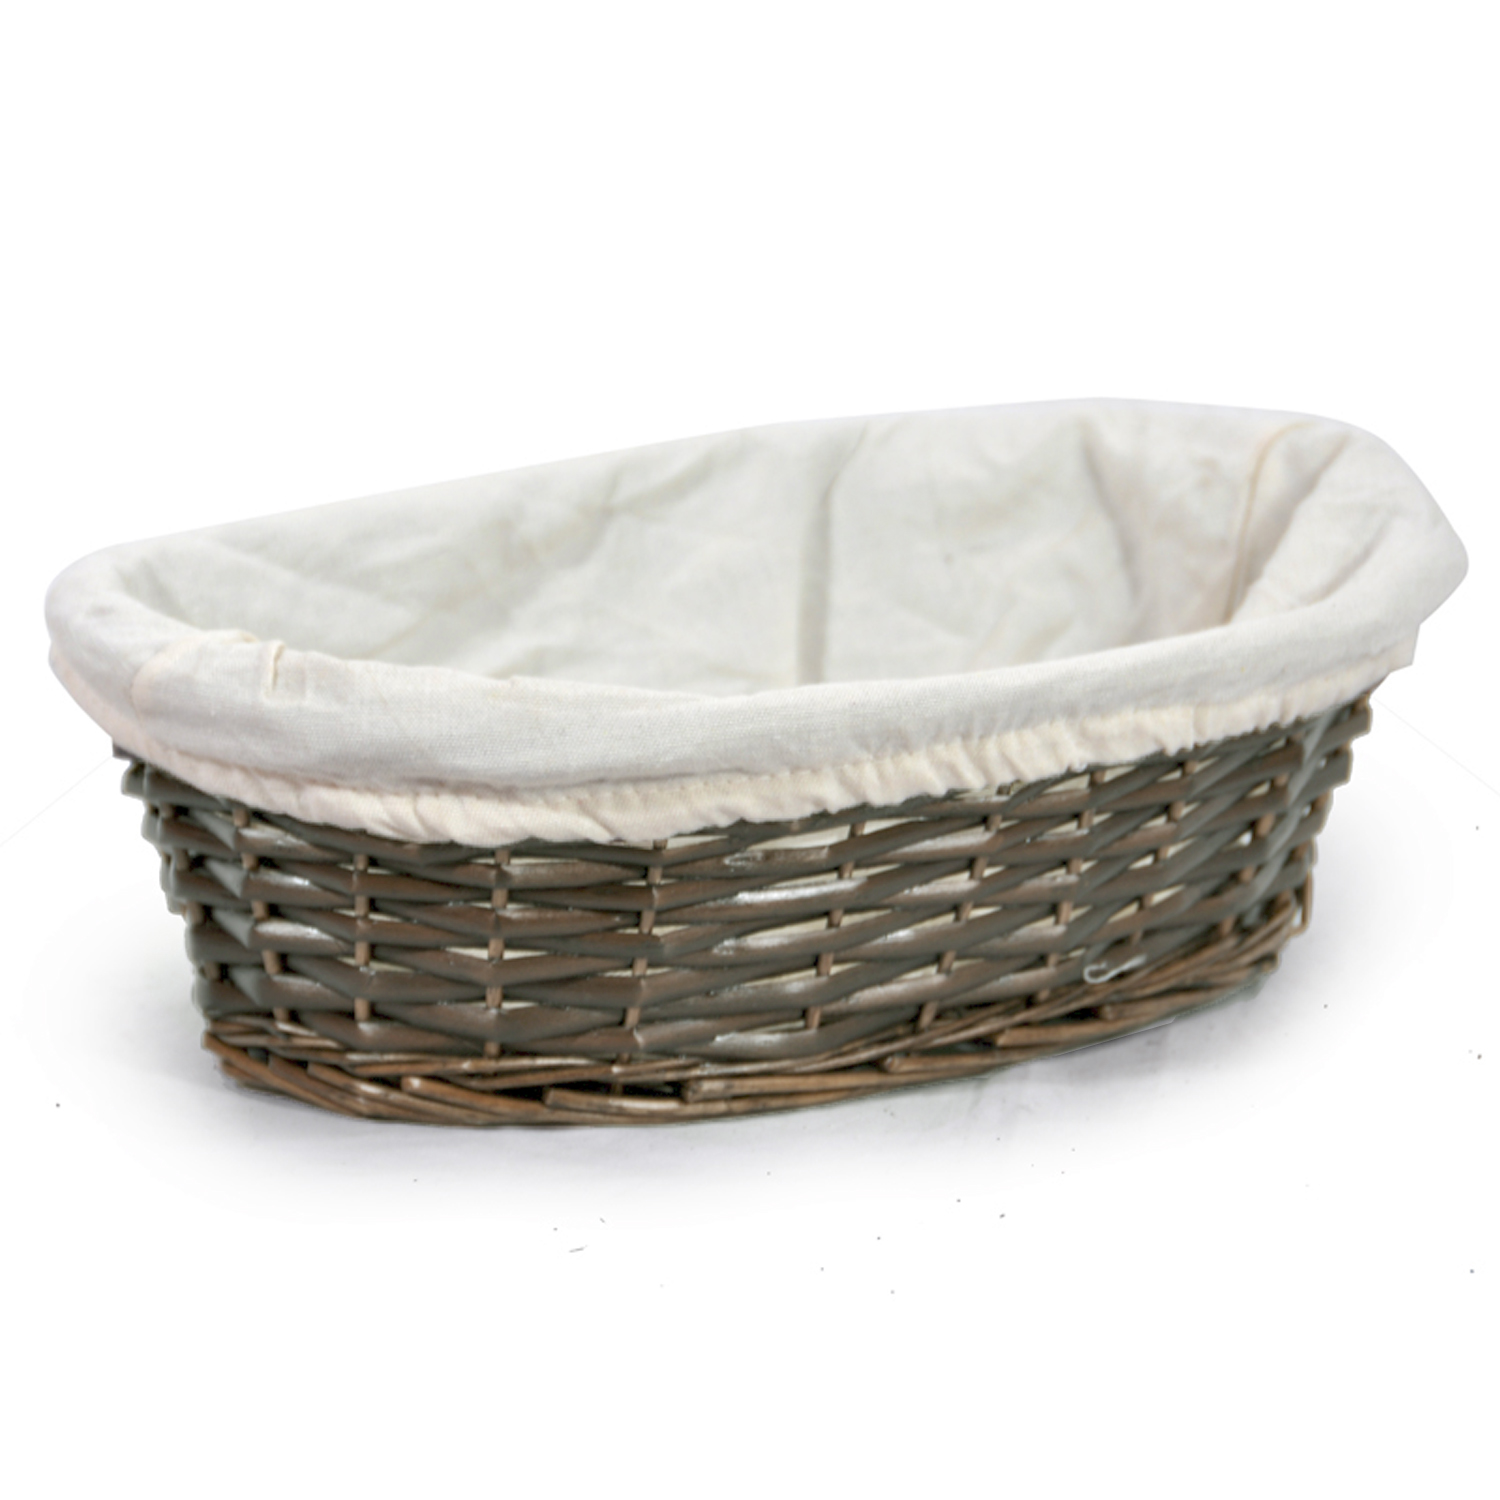 Savannah Medium Oval Utility with Cloth Liner Basket 11in